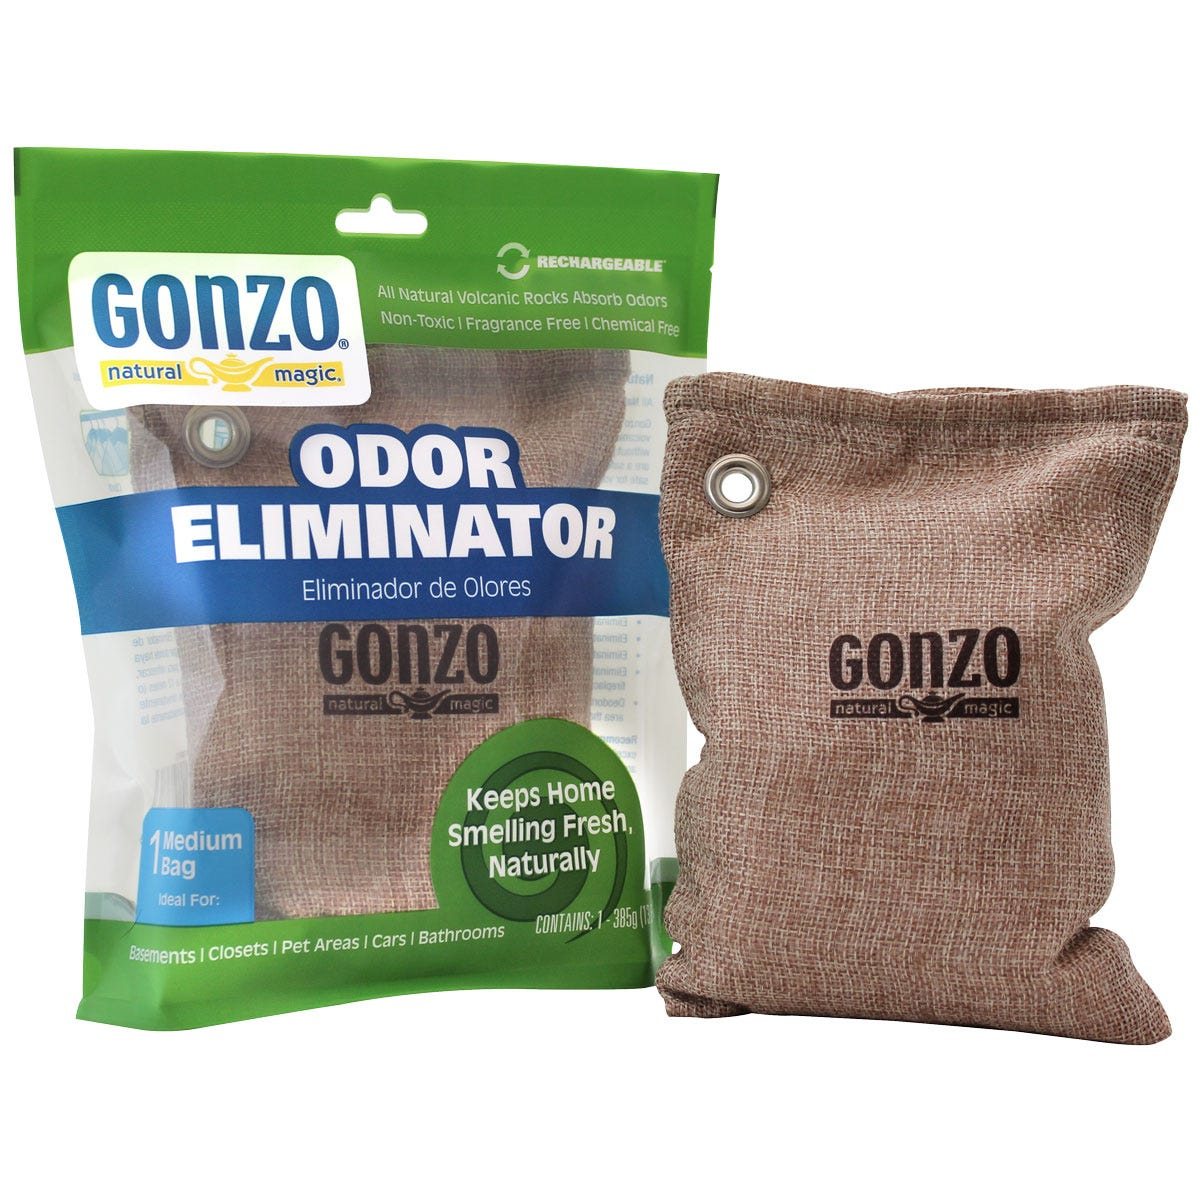 Odor eliminator burlap bag